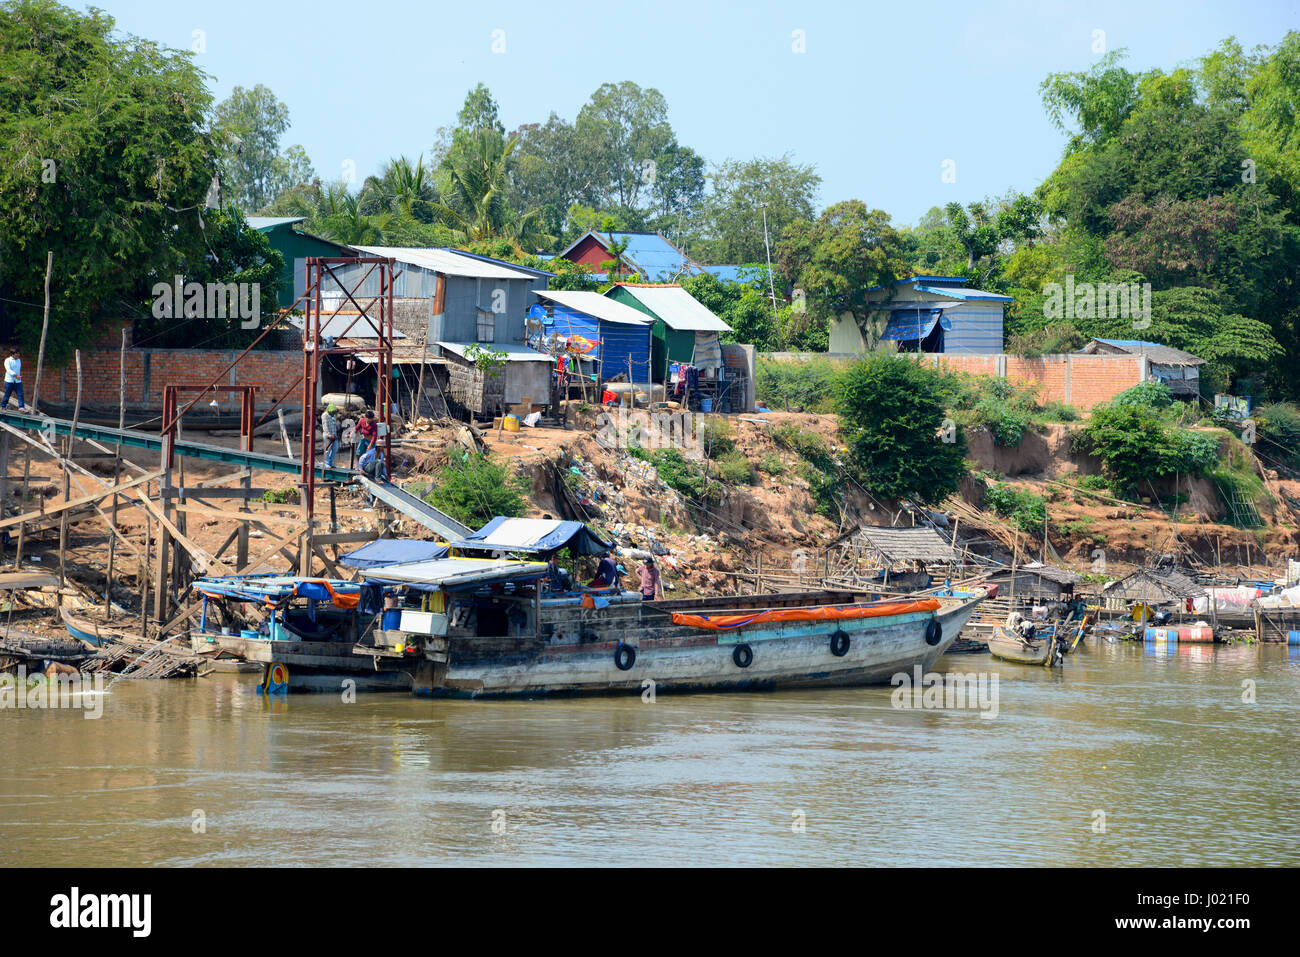 Community on the banks of the Mekong River, Cambodia - Stock Image